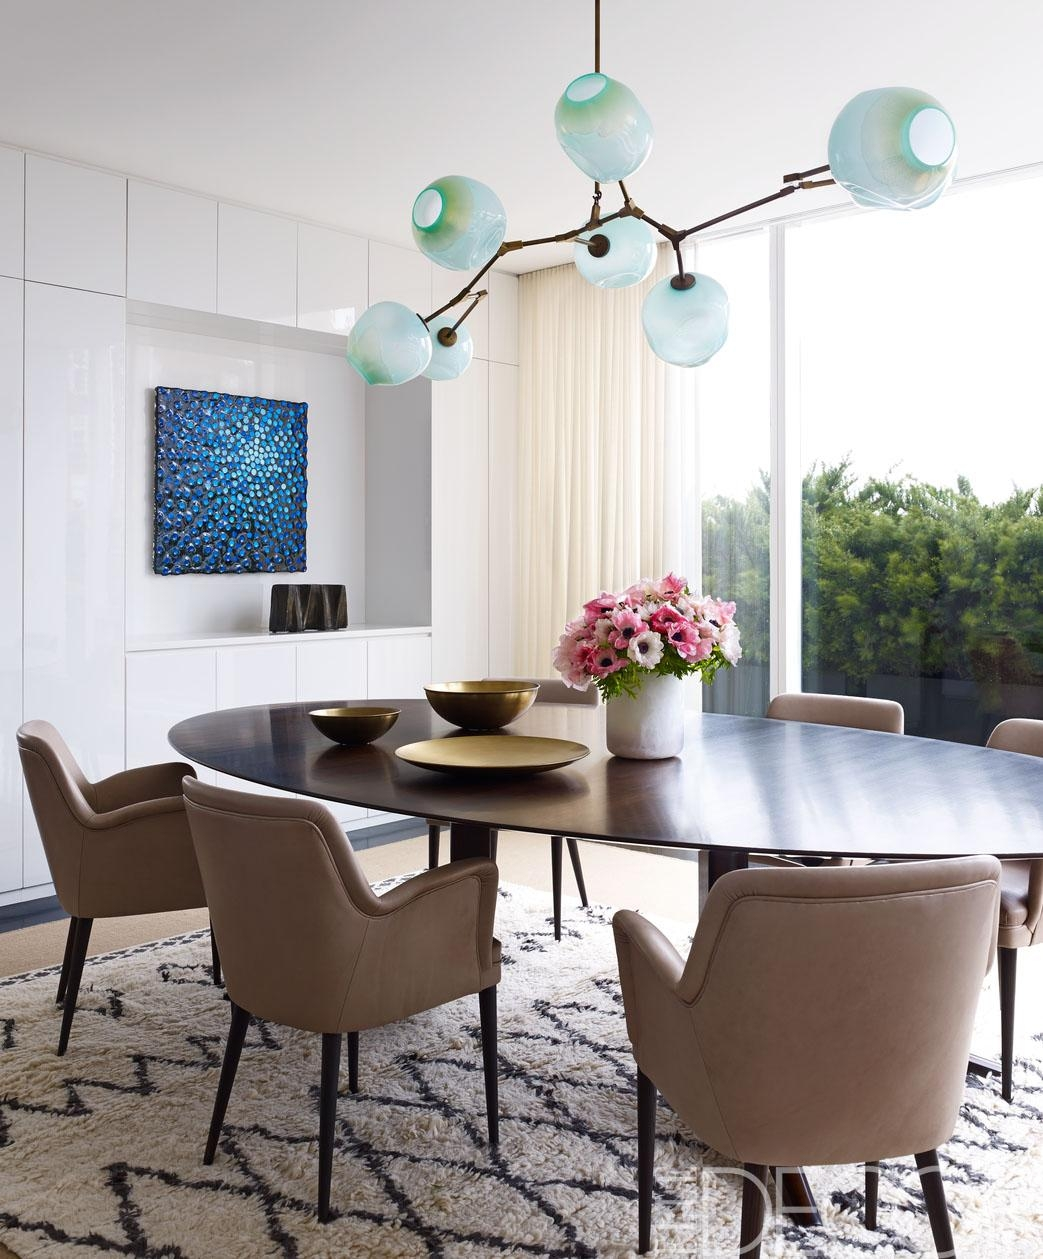 25 Modern Dining Room Decorating Ideas – Contemporary Dining Room Inside Modern Wall Art For Dining Room (View 11 of 20)